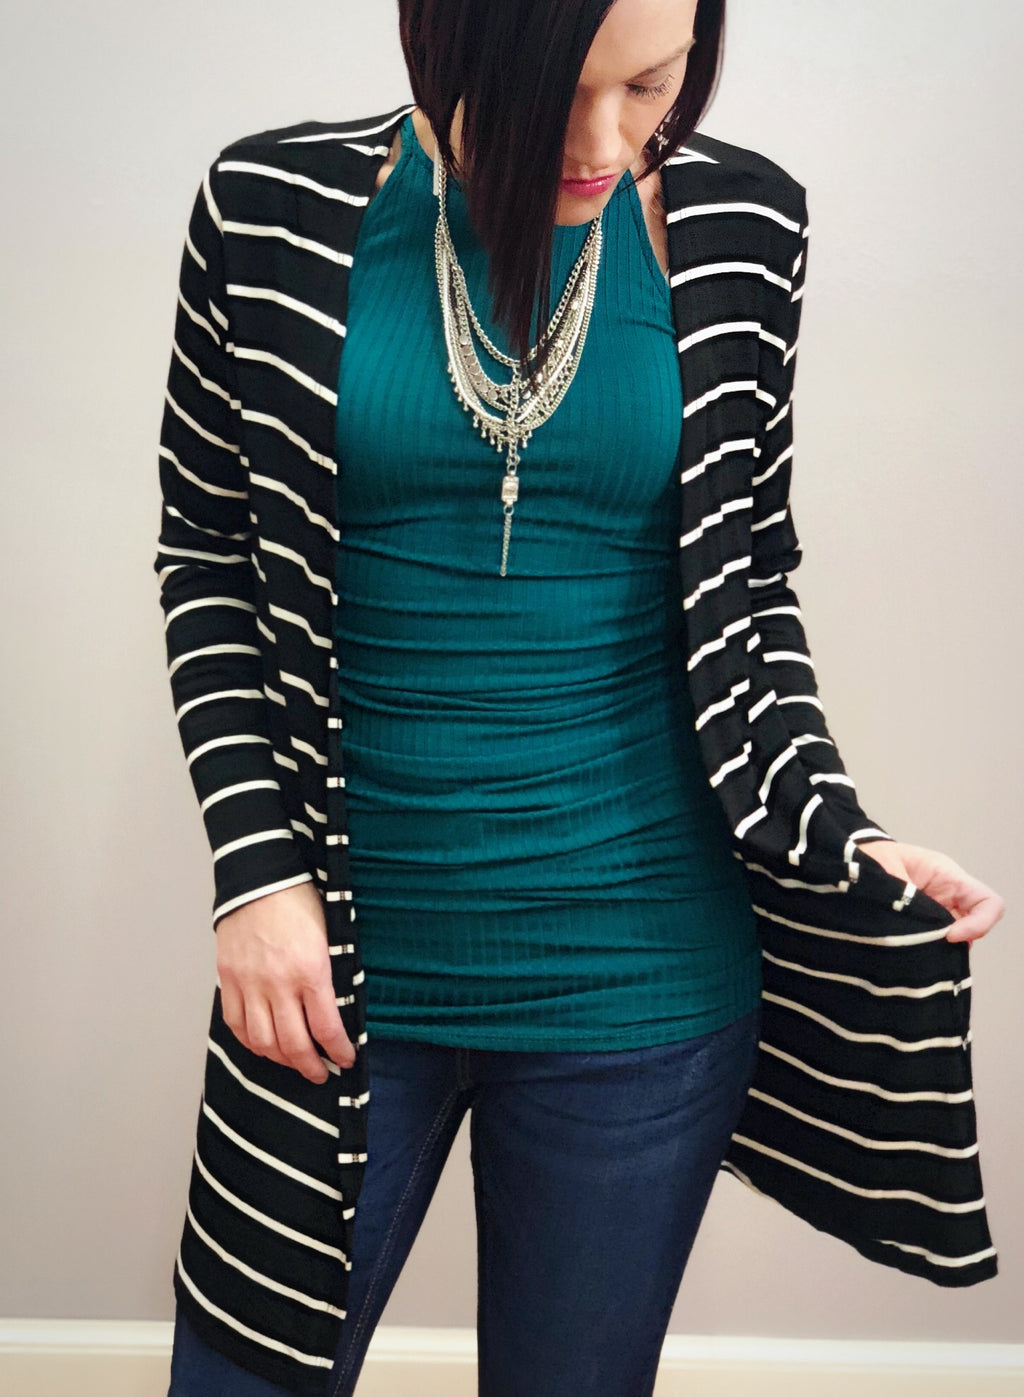 Bria Bella & Co - All-Season Open Cardigan